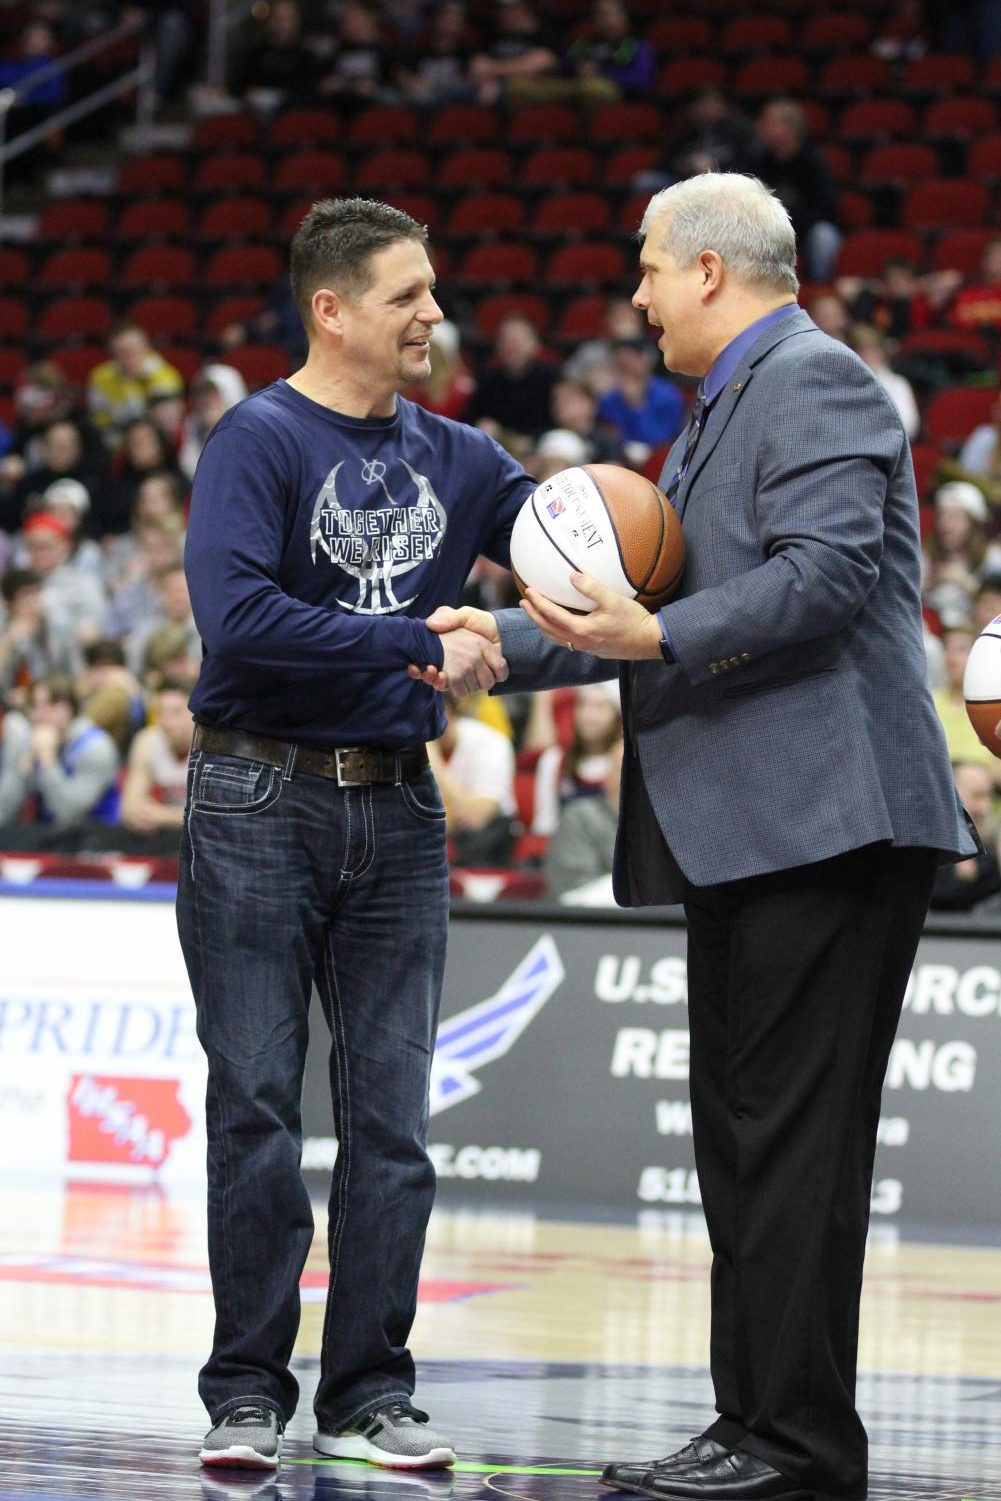 Kevin Lux, father of Nate (X15), Gabe (X18), and Jack (X21),  receives the Fan of the Game award and a commemorating basketball at the Wells Fargo Arena before the state quarterfinal game against Marion. Camryn McPherson Photo.